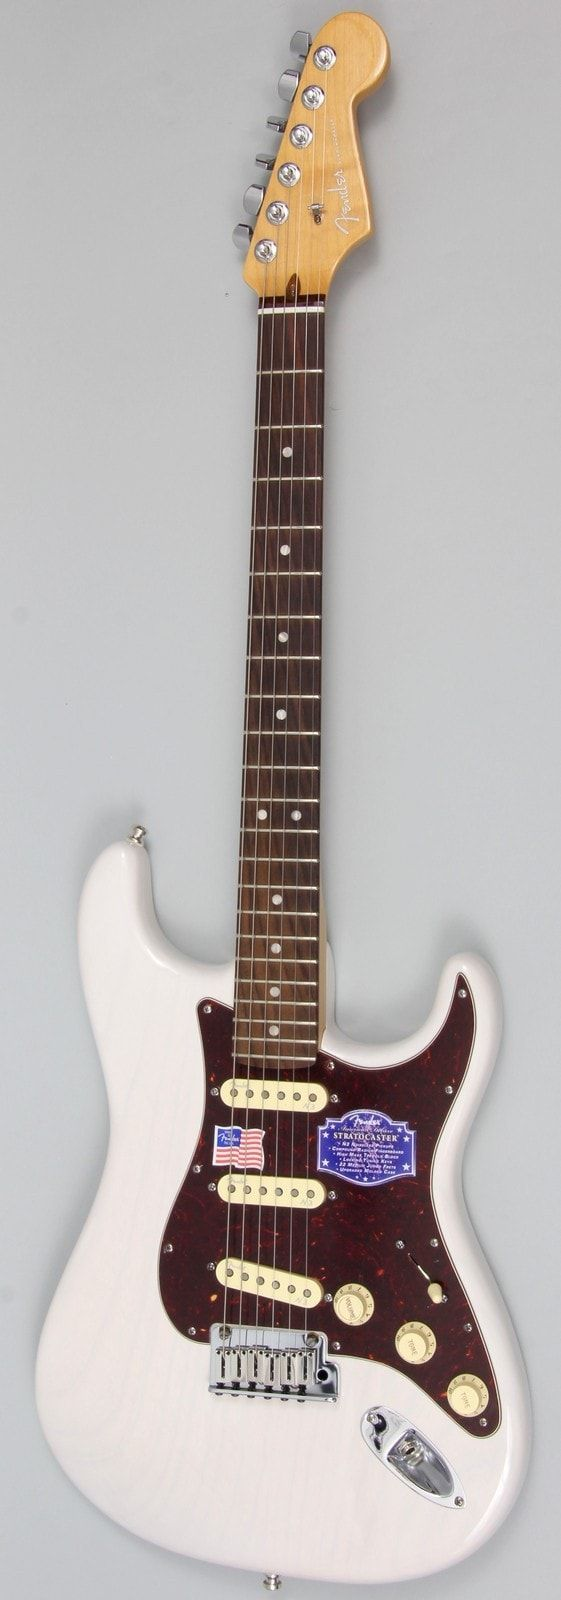 The Fender American Deluxe Stratocaster Ash has the distinctive grain pattern and spanking tone of an ash body, with all the cool specs of the American Deluxe Stratocaster. The compound radius fingerb